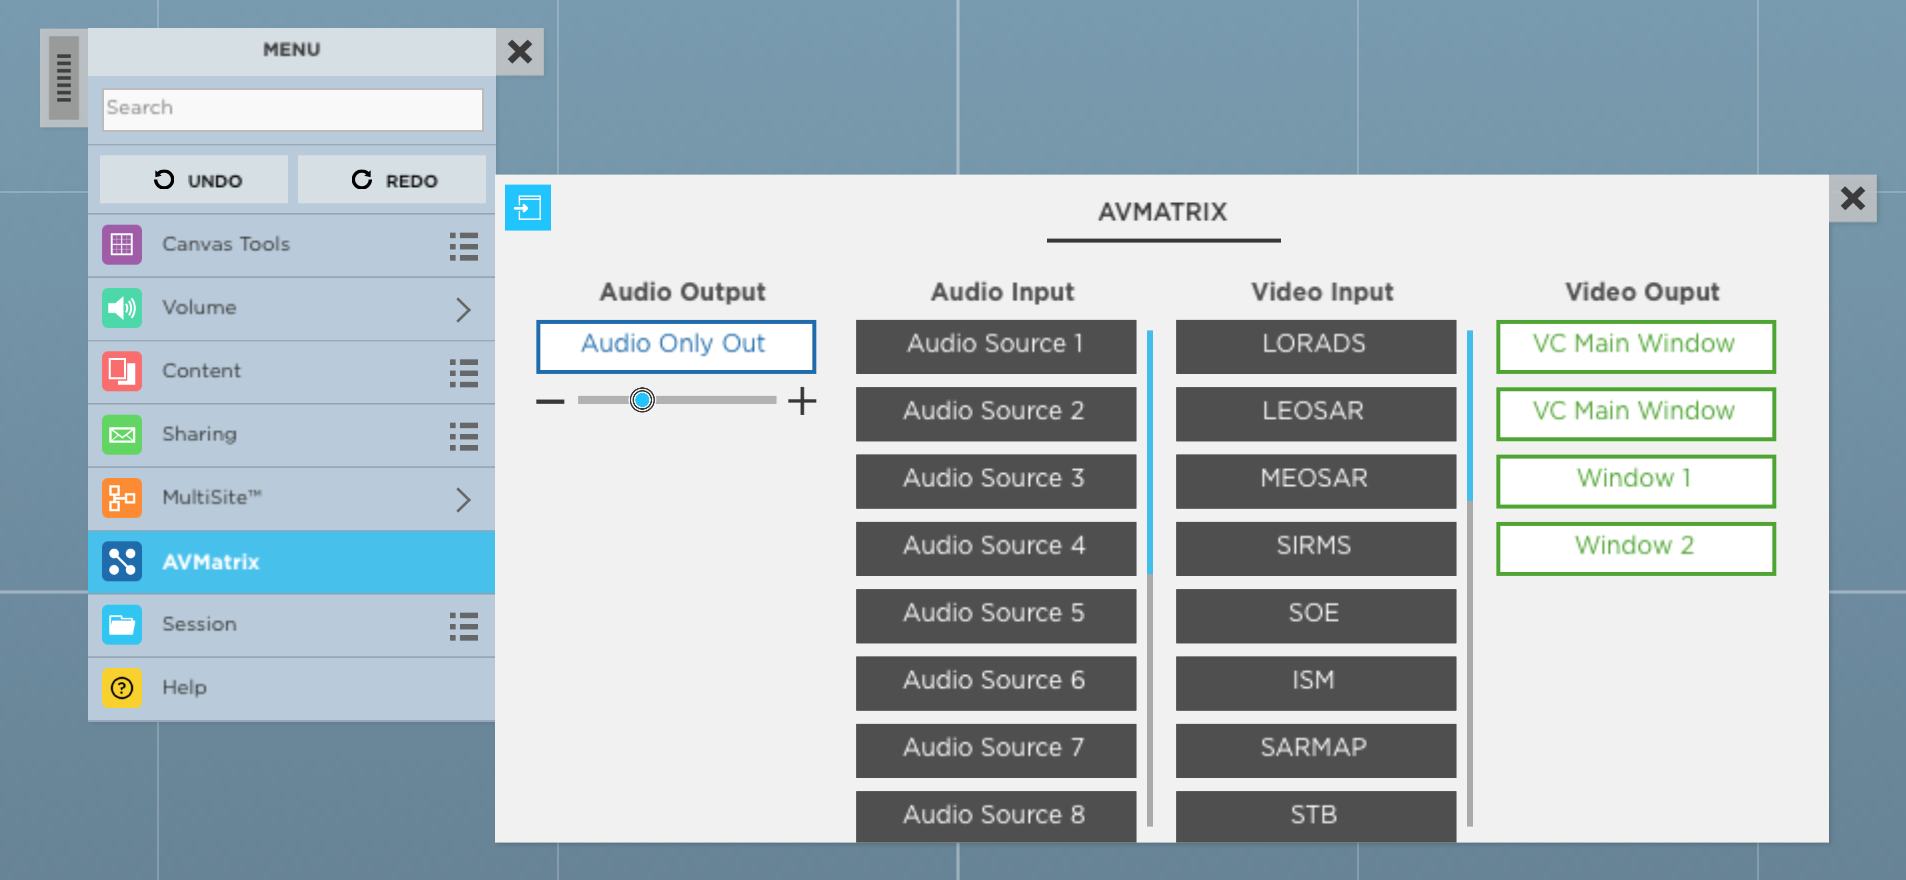 ThinkHub_4.5_Virtual_AV_Matrix_Switcher_Menu_control_panel